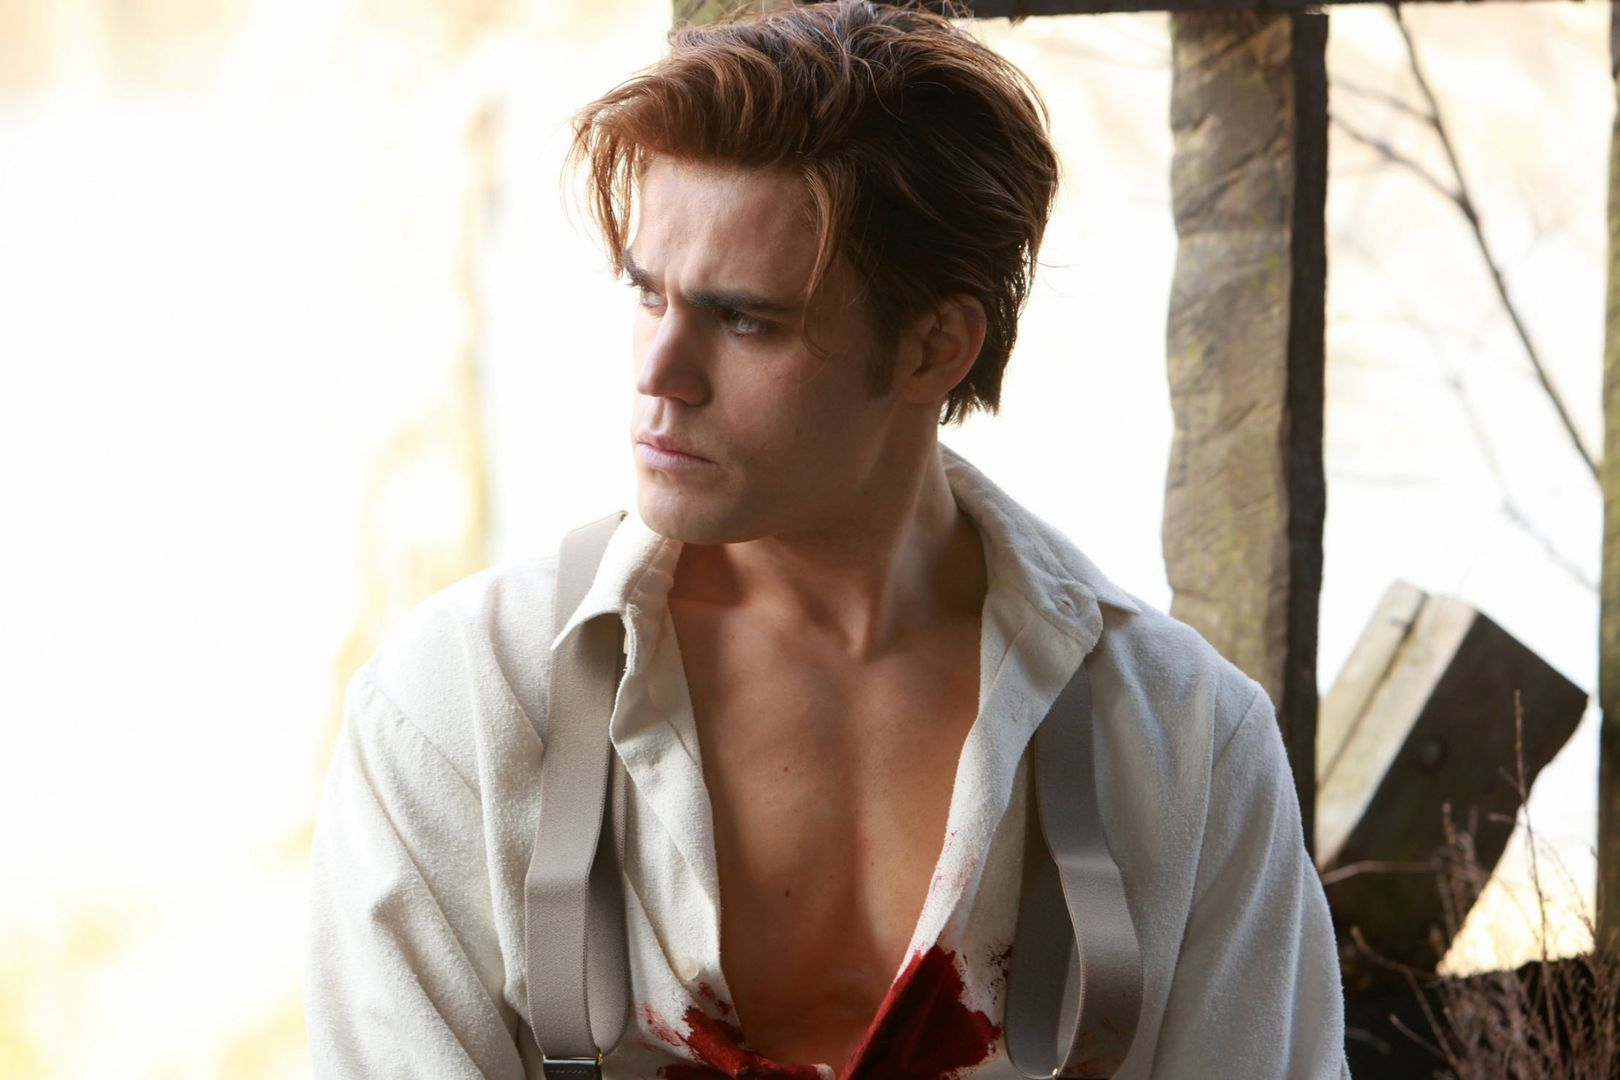 http://images2.fanpop.com/image/photos/11300000/1x20-Blood-Brothers-Promotional-Photos-the-vampire-diaries-tv-show-11380941-1620-1080.jpg